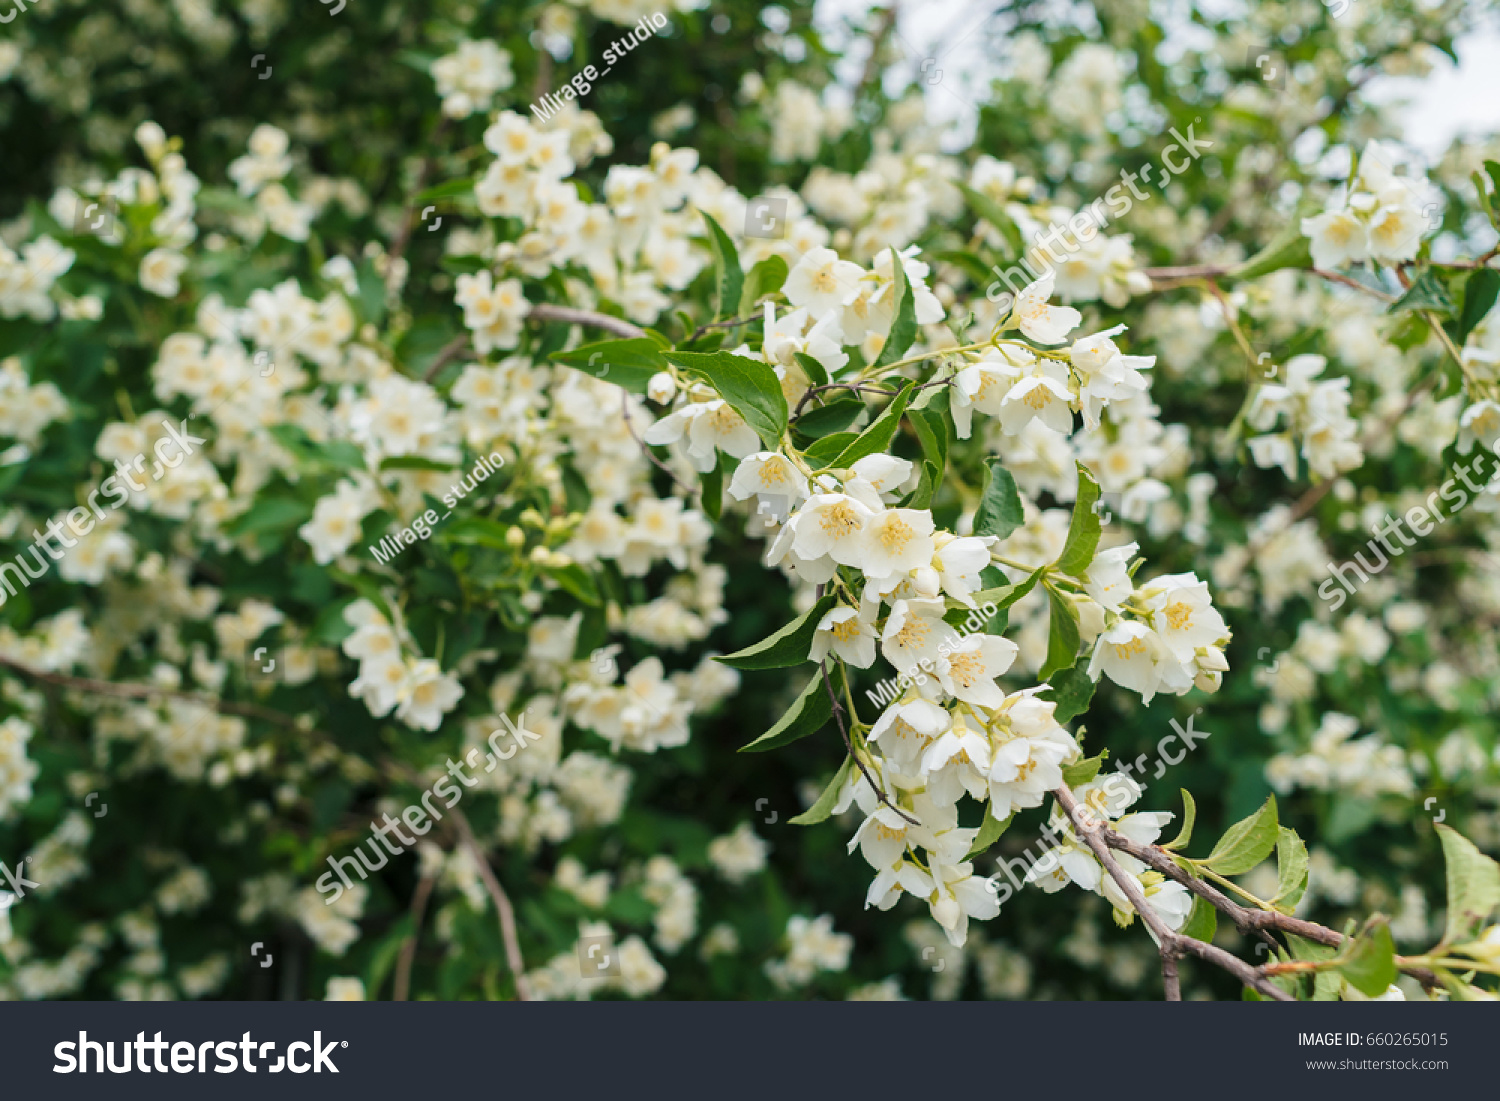 White Flowers Of Apple Trees Spring Landscape Ez Canvas